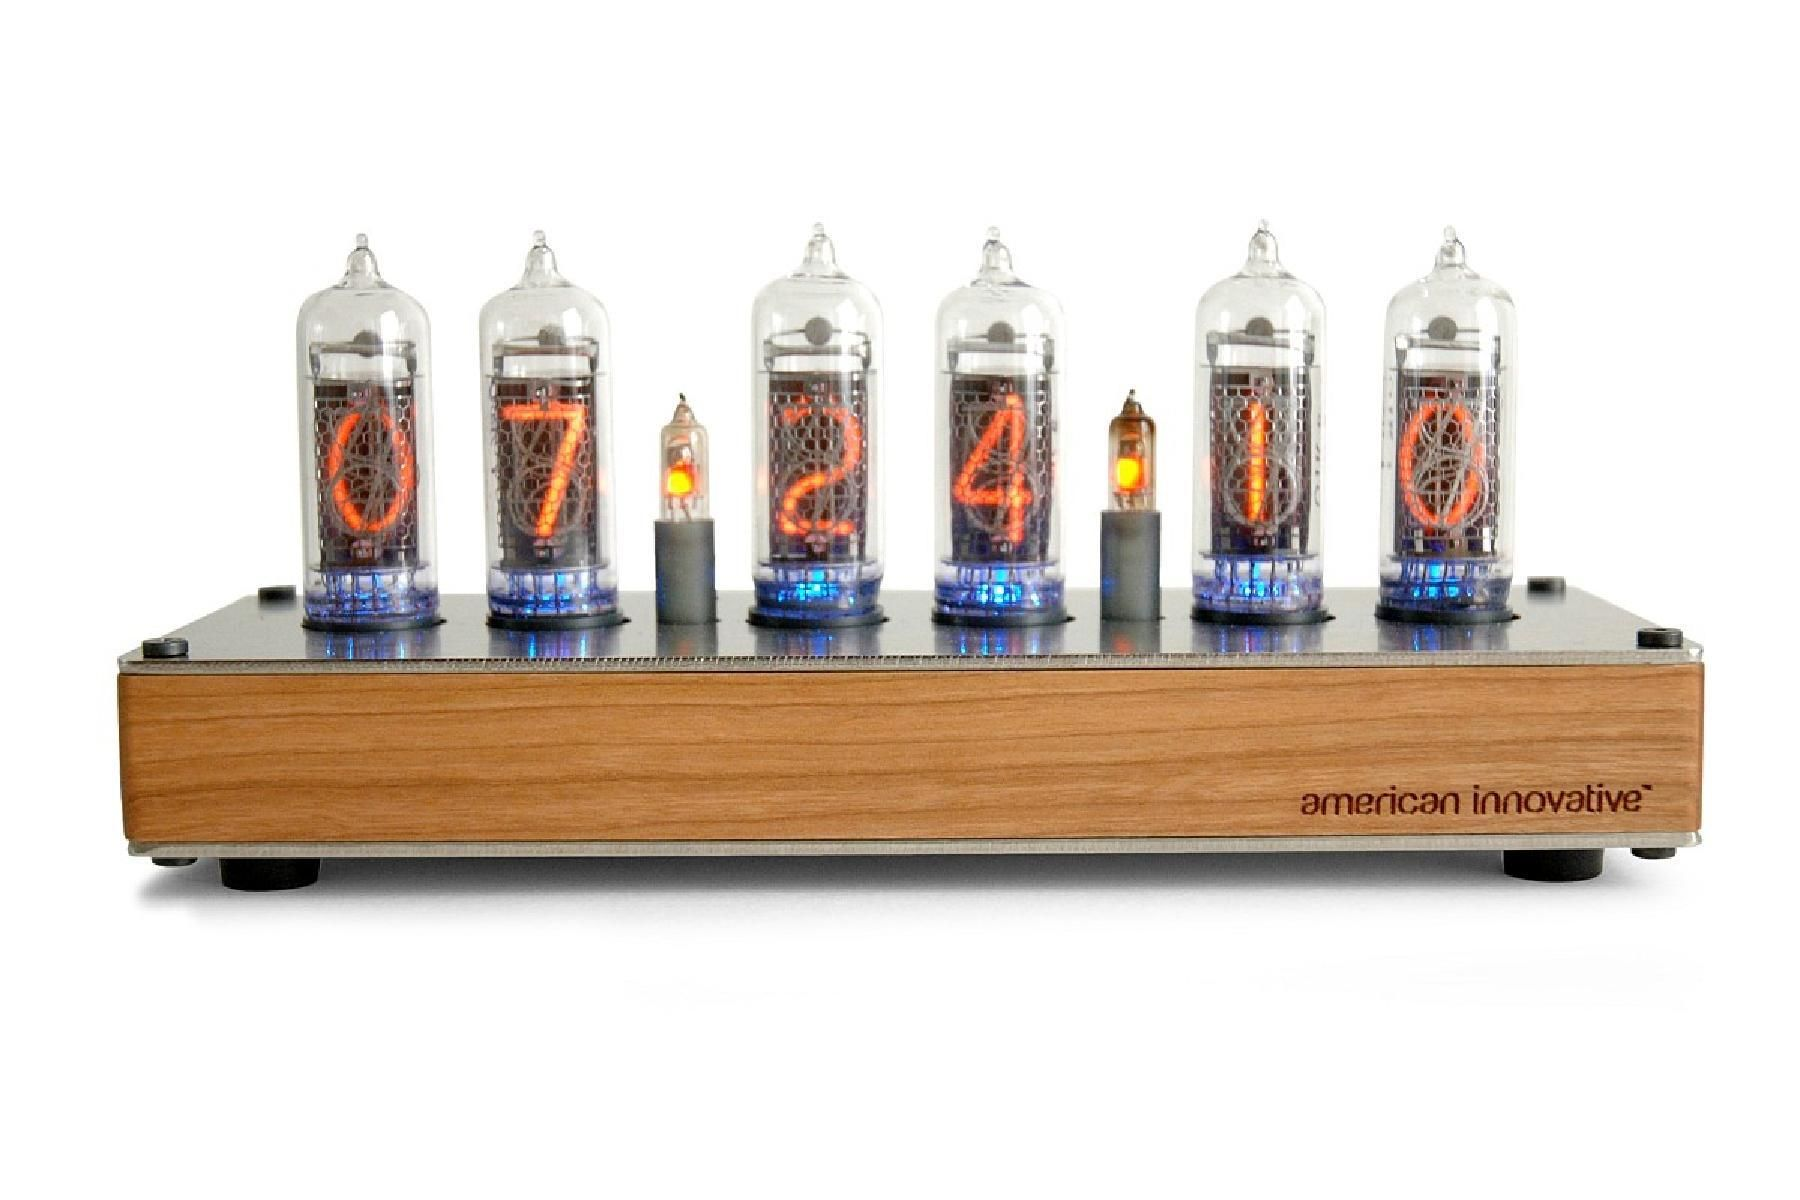 Nixie tube clocks may have fallen out of use with the rise of LED displays, but definitely not for lack of aesthetics. Now that they're making a comeback, American Innovative is looking for a group of hands-on Beta testers to purchase, build, and give feedback on their Nixie Clock kits. Options from fully assembled clocks down to just their printed circuit boards!